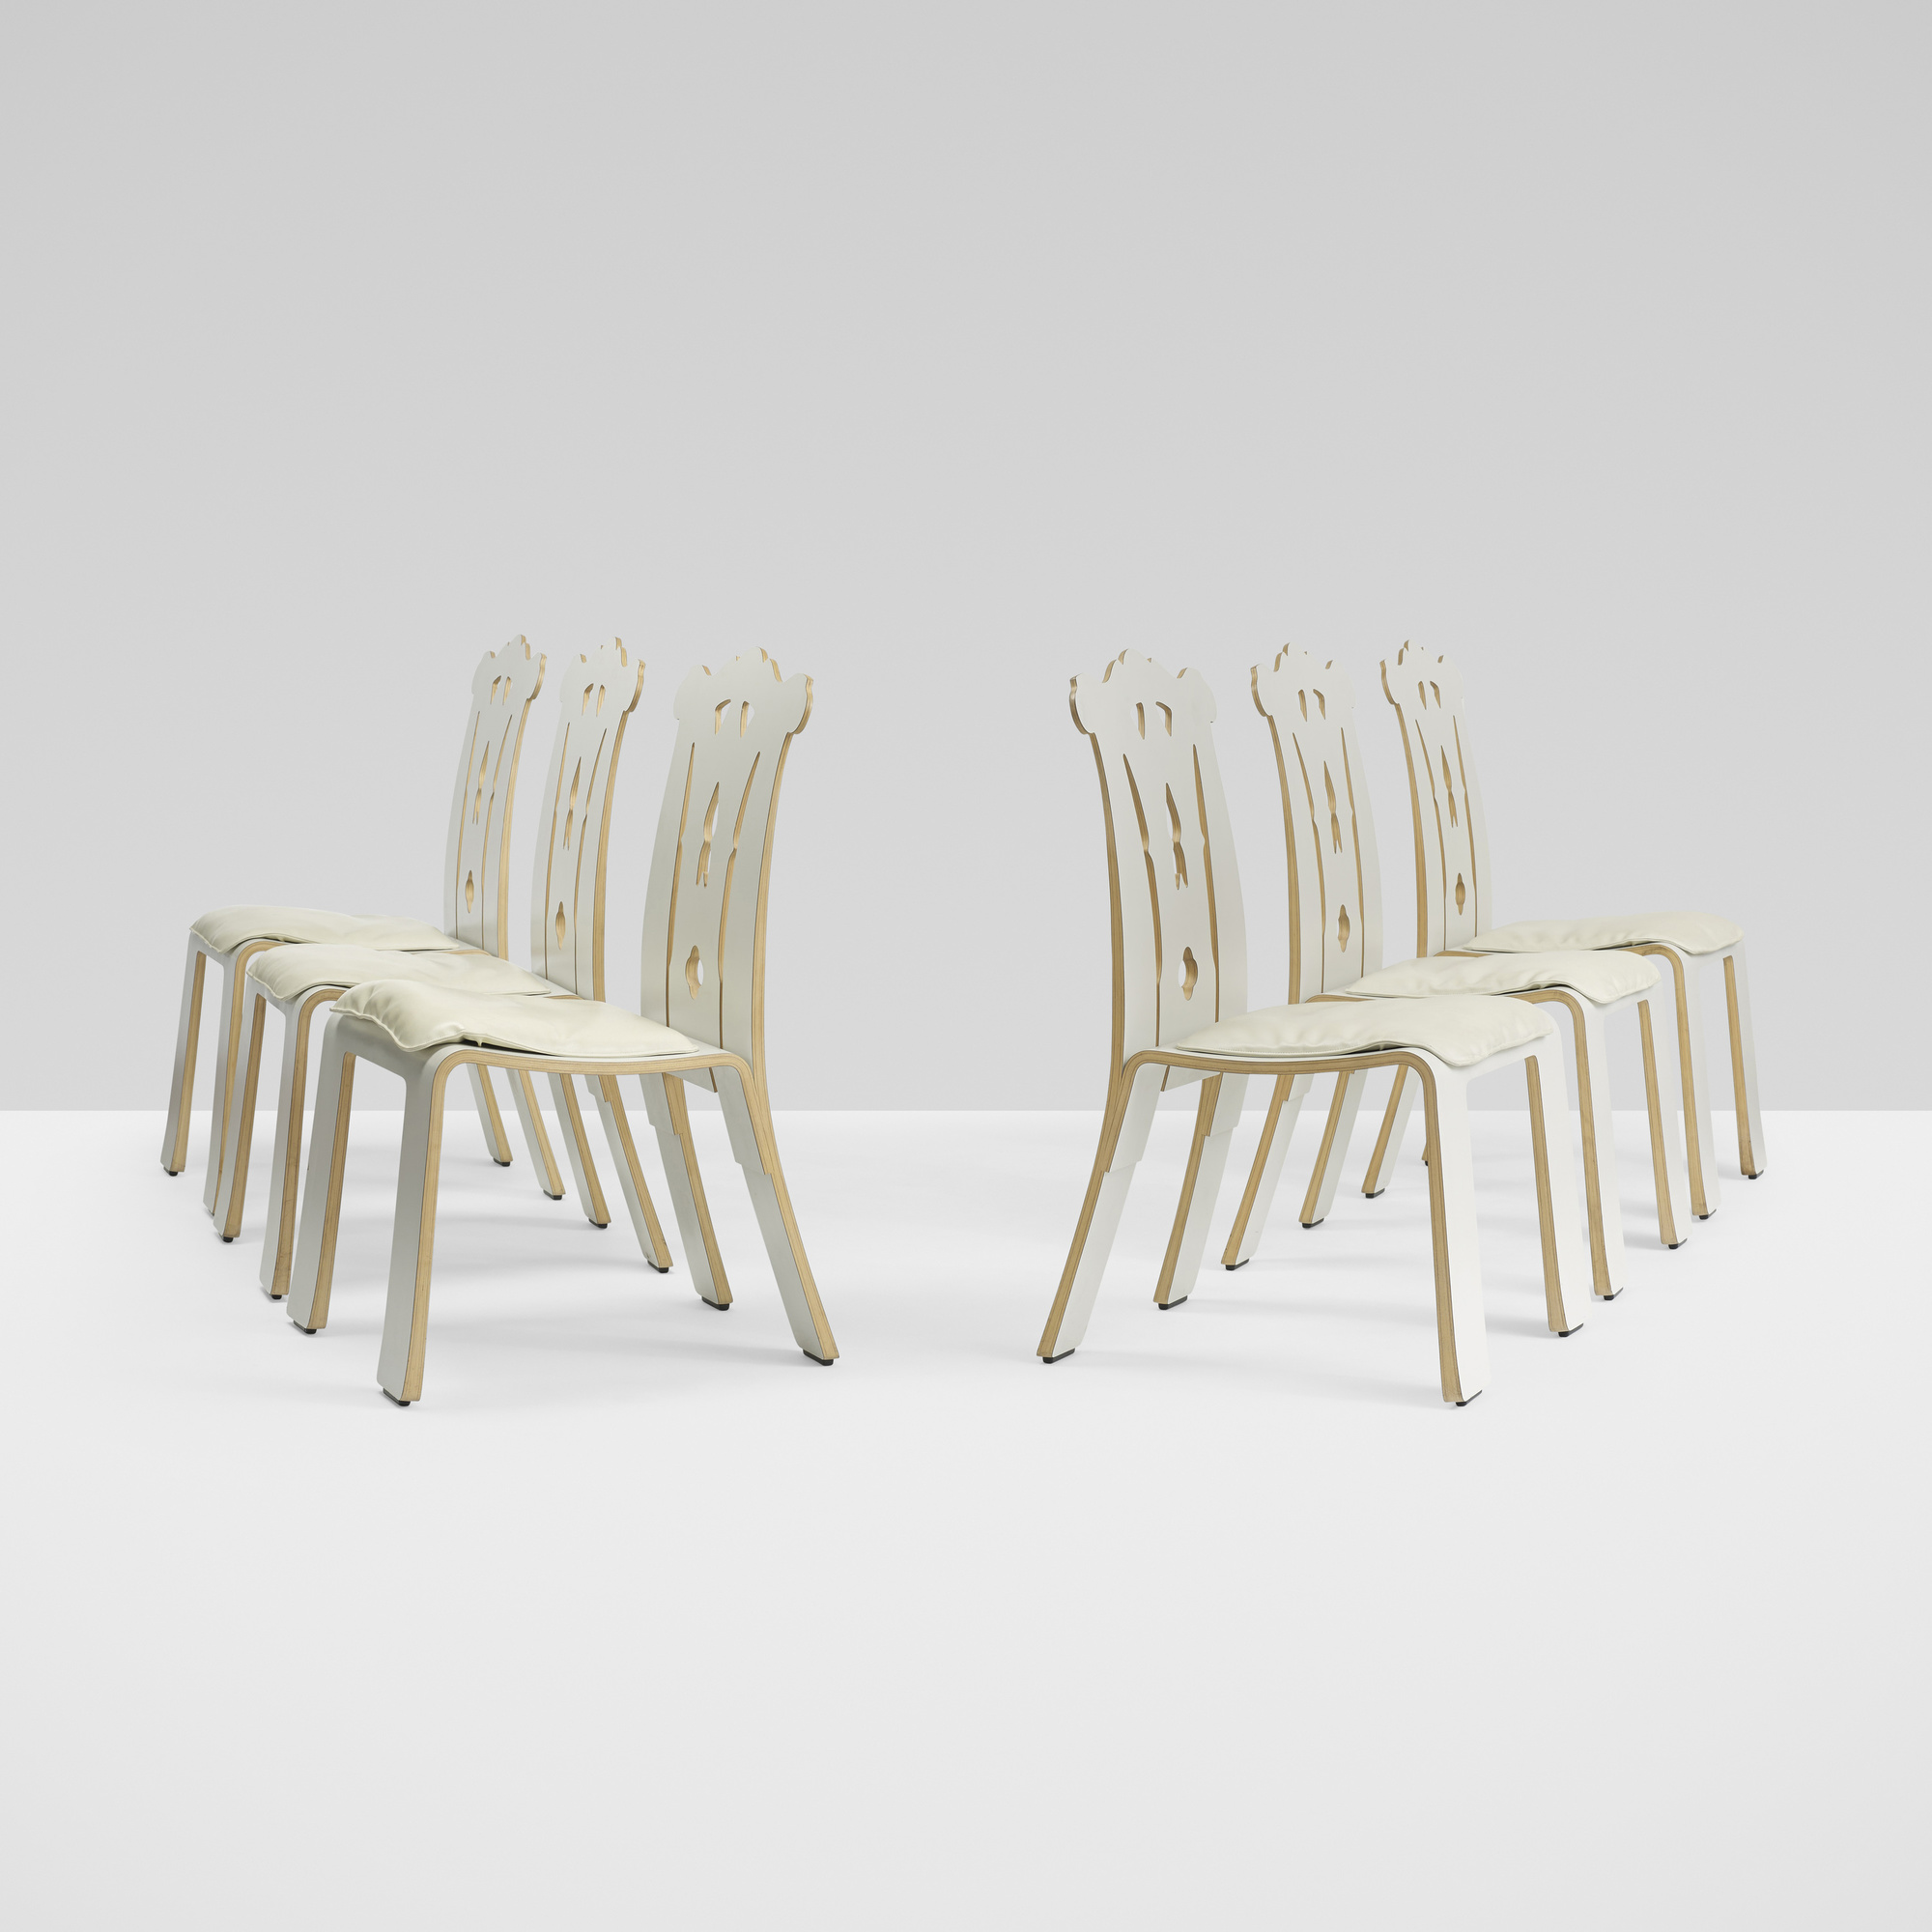 281: Robert Venturi / Chippendale chairs, set of six (1 of 4)